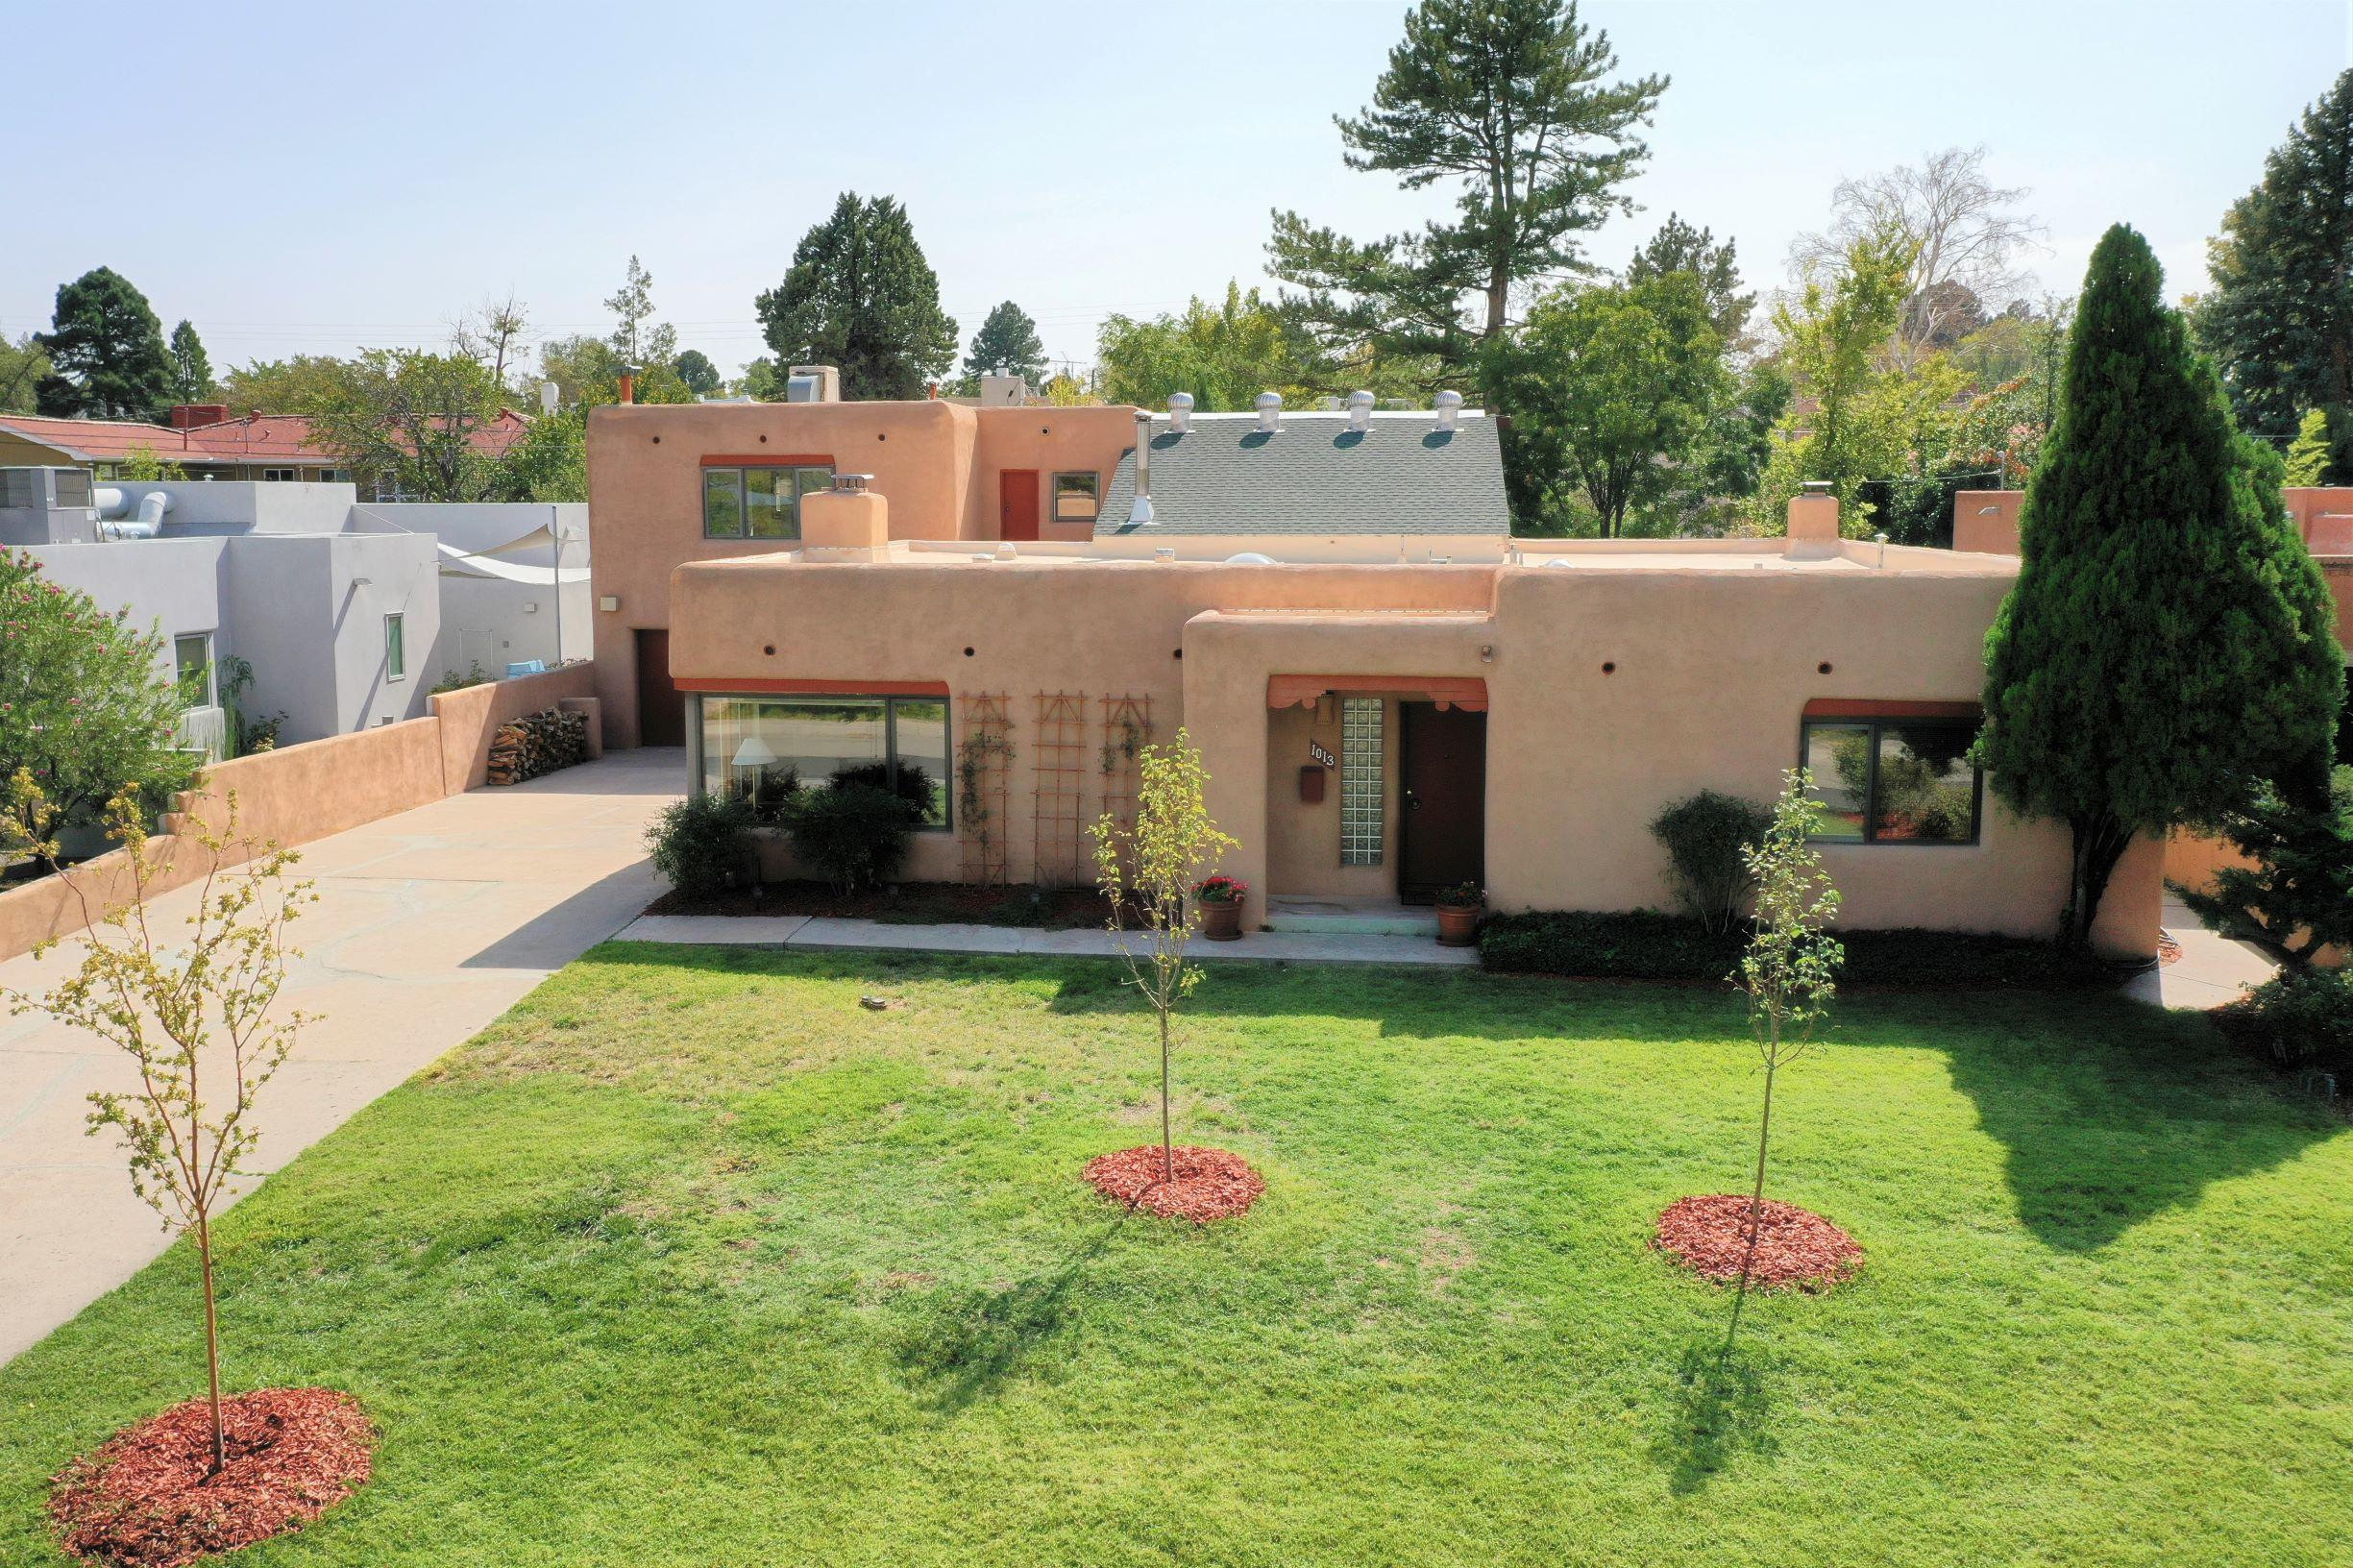 1013 IDLEWILDE Lane SE Property Photo - Albuquerque, NM real estate listing